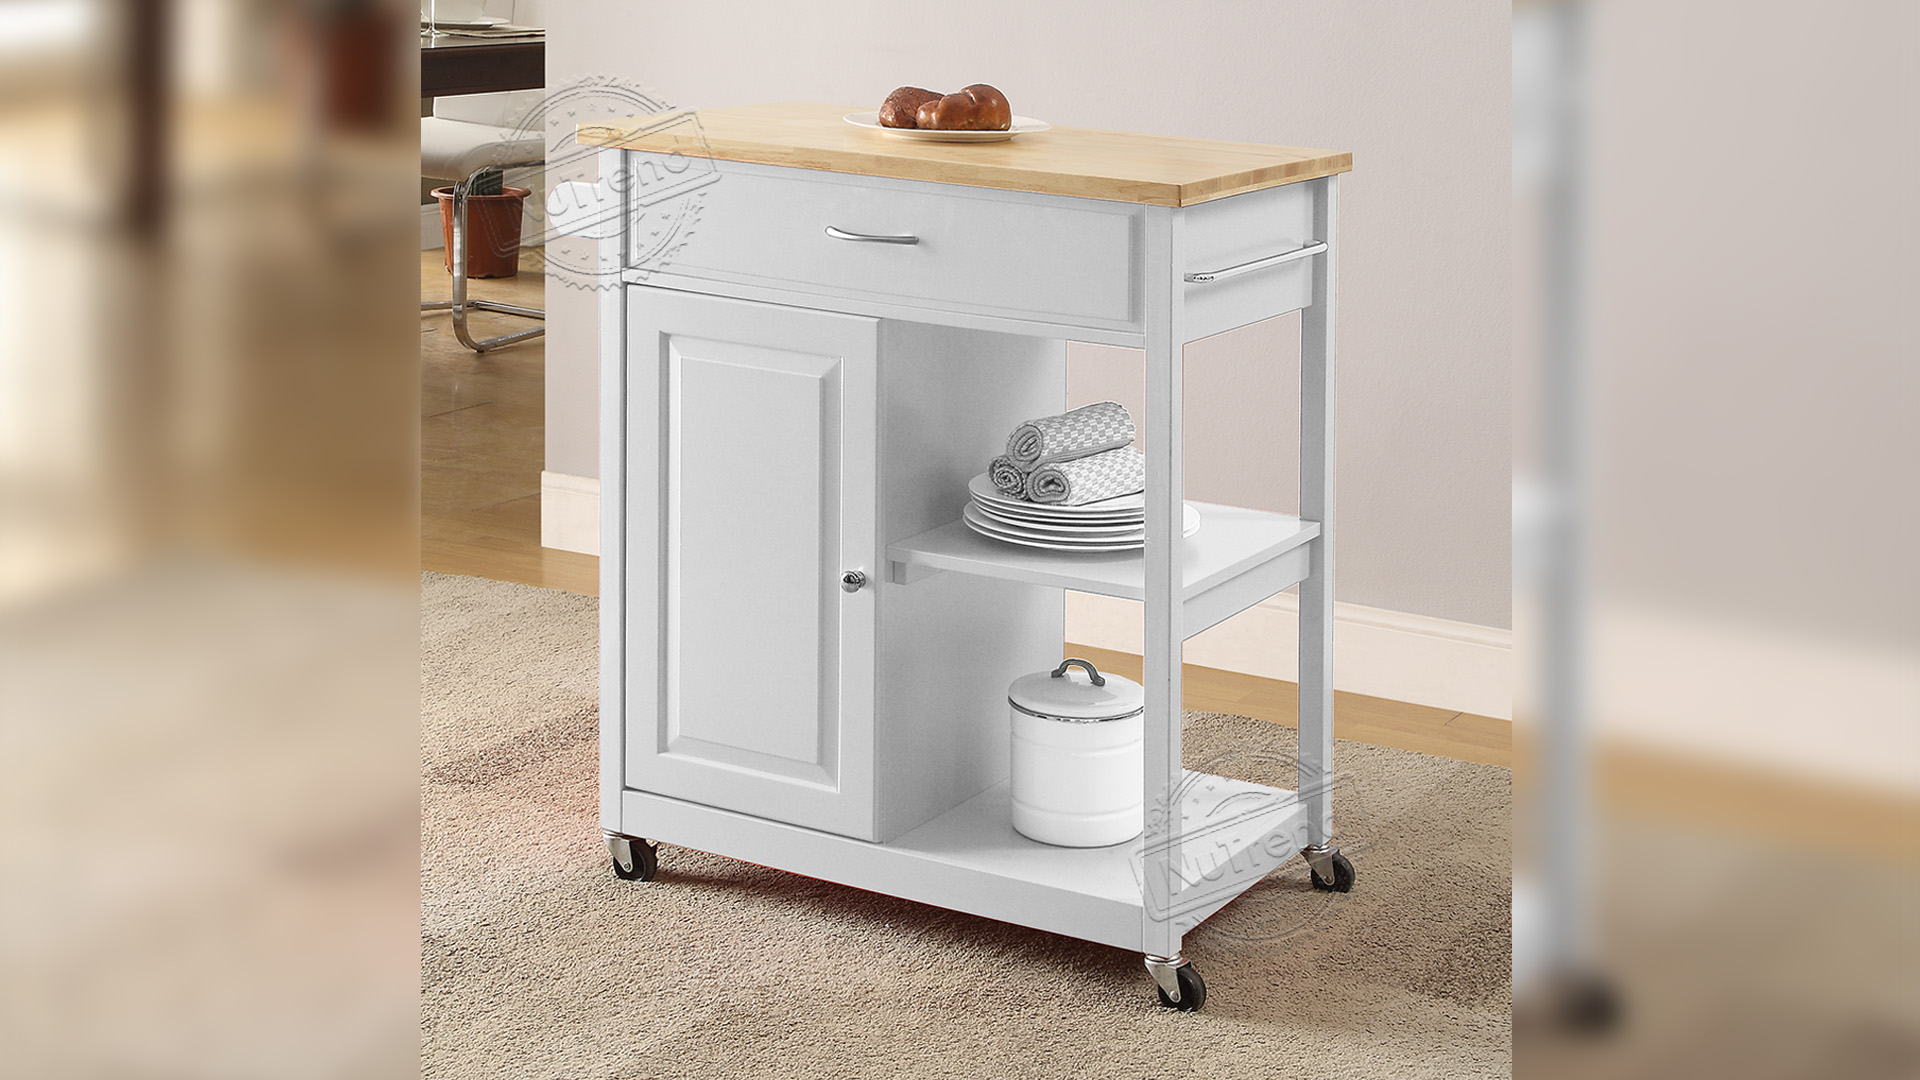 Professional Microwave Kitchen Island Cart with Solid Wood Top Manufacturers 102064